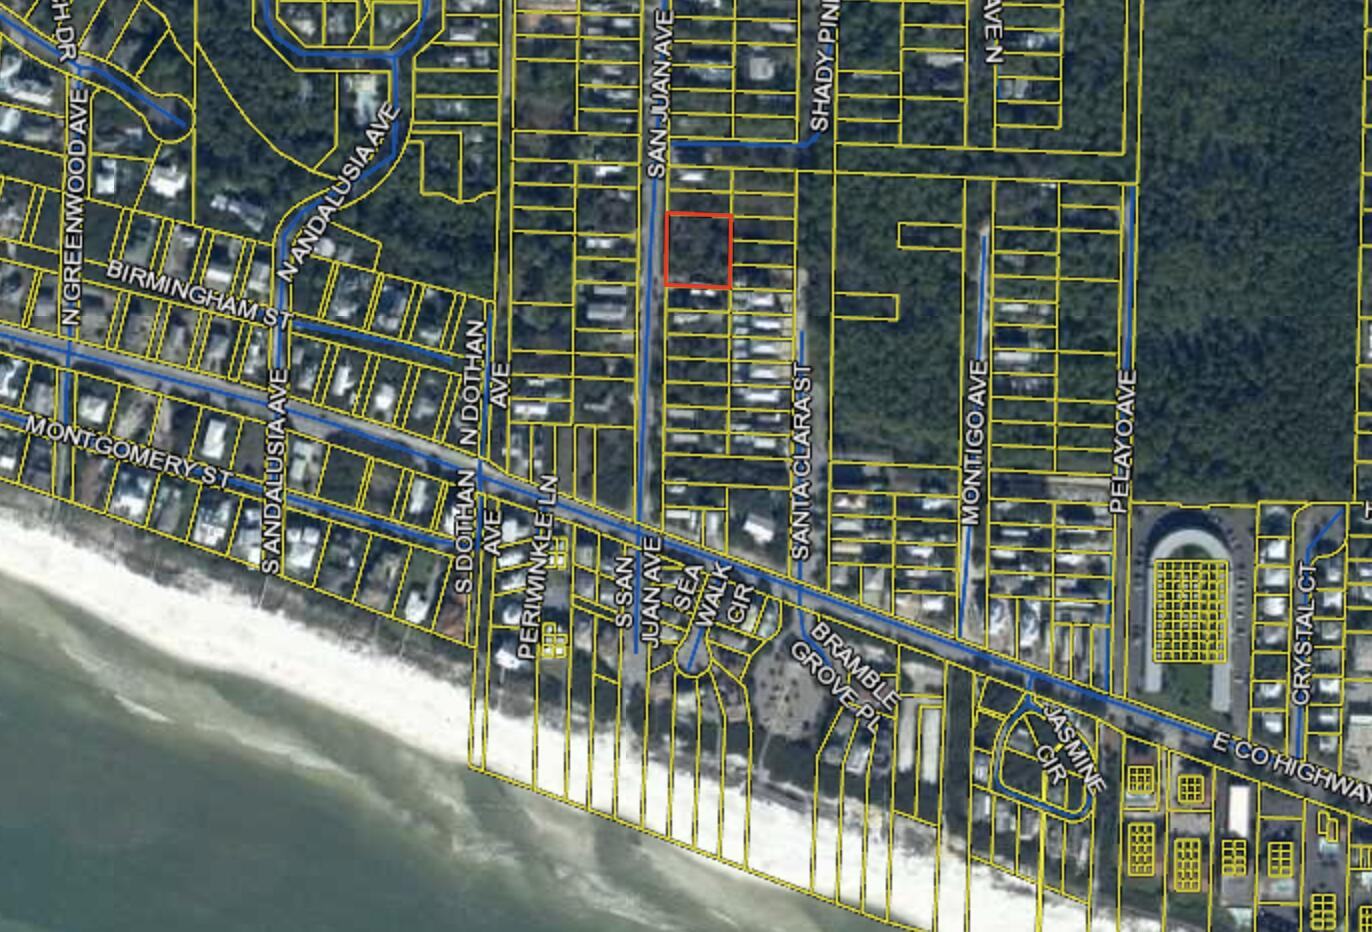 Three lots in the heart of Seagrove and just a few blocks from the beach. The southern most lot is buildable, While the northern two are in wetlands. All three lots are to be sold together. Wetland study available.